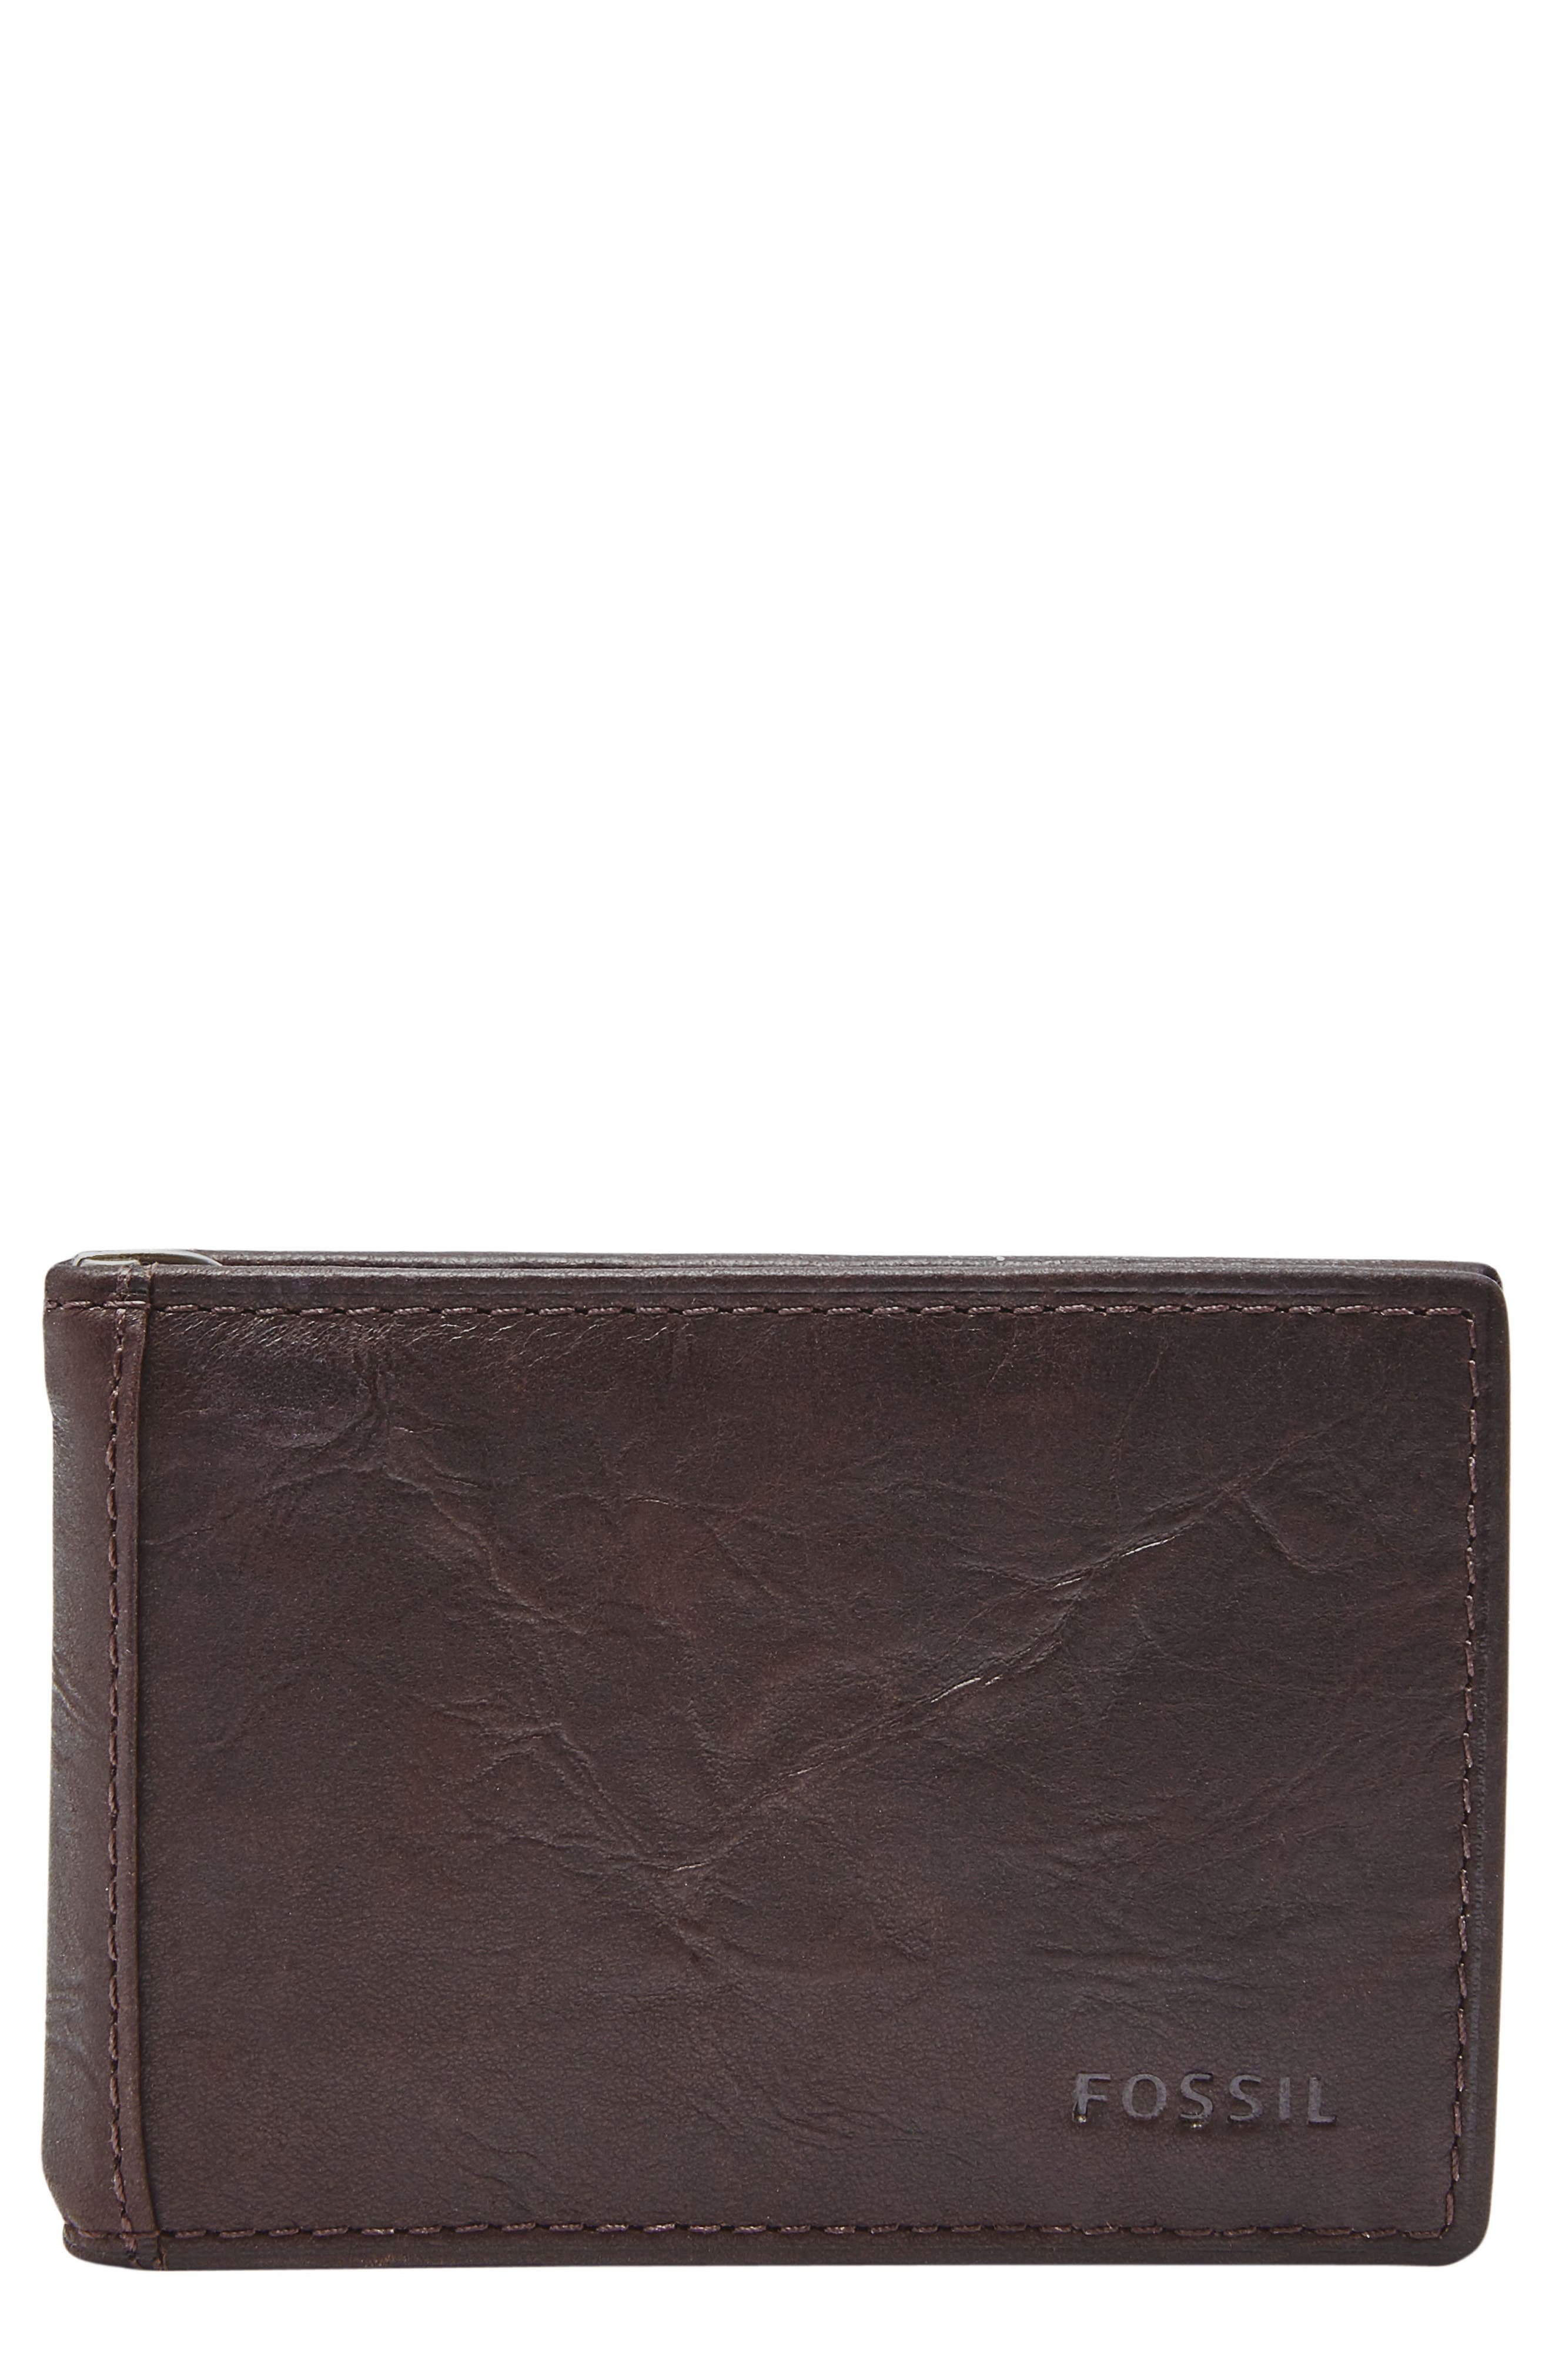 FOSSIL Neel Leather Money Clip Wallet, Main, color, BROWN